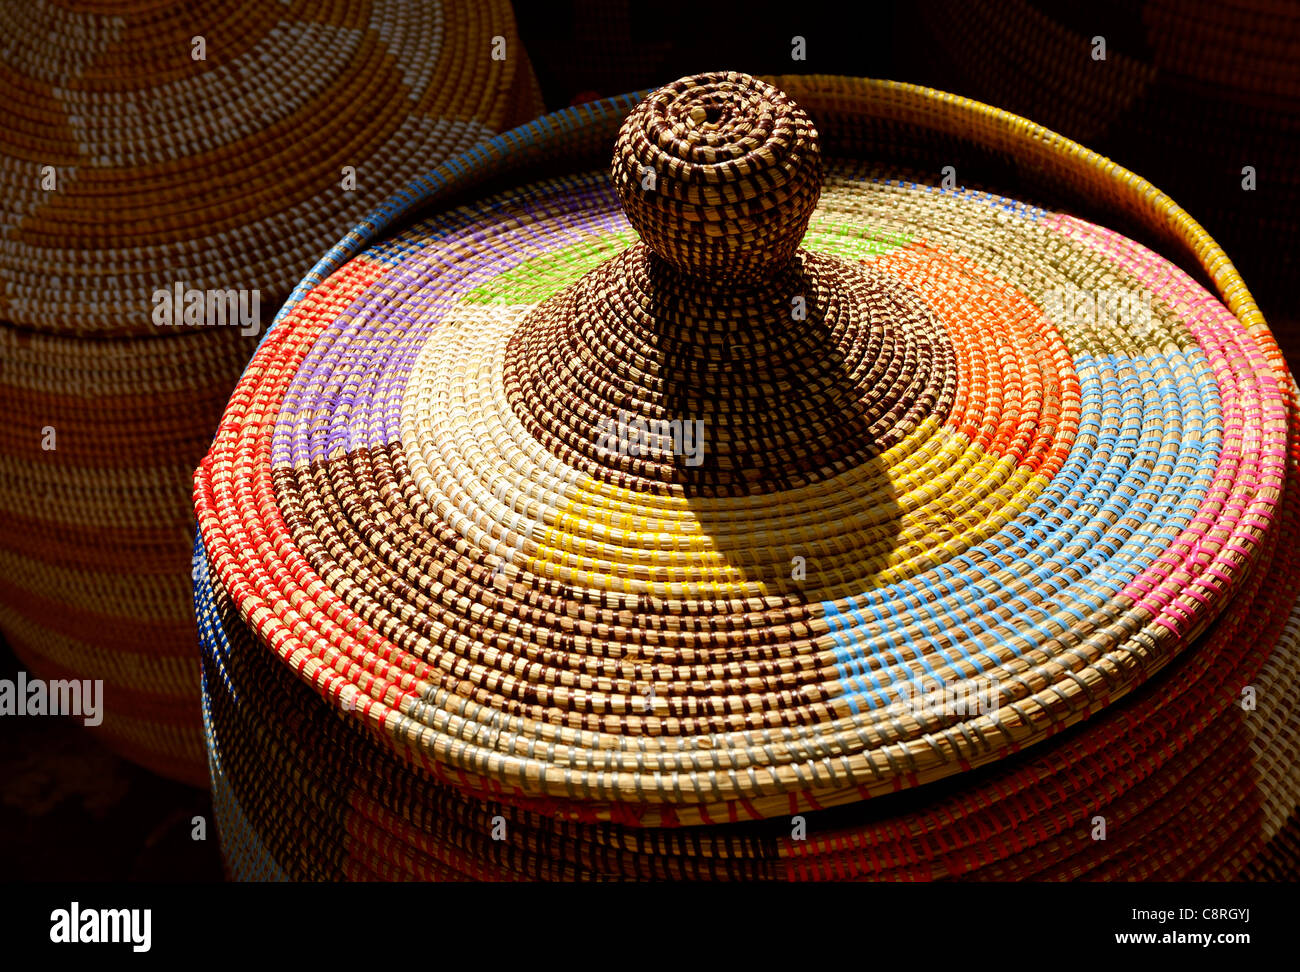 COLOURFUL WOVEN BASKET IN A STREET MARKET - Stock Image